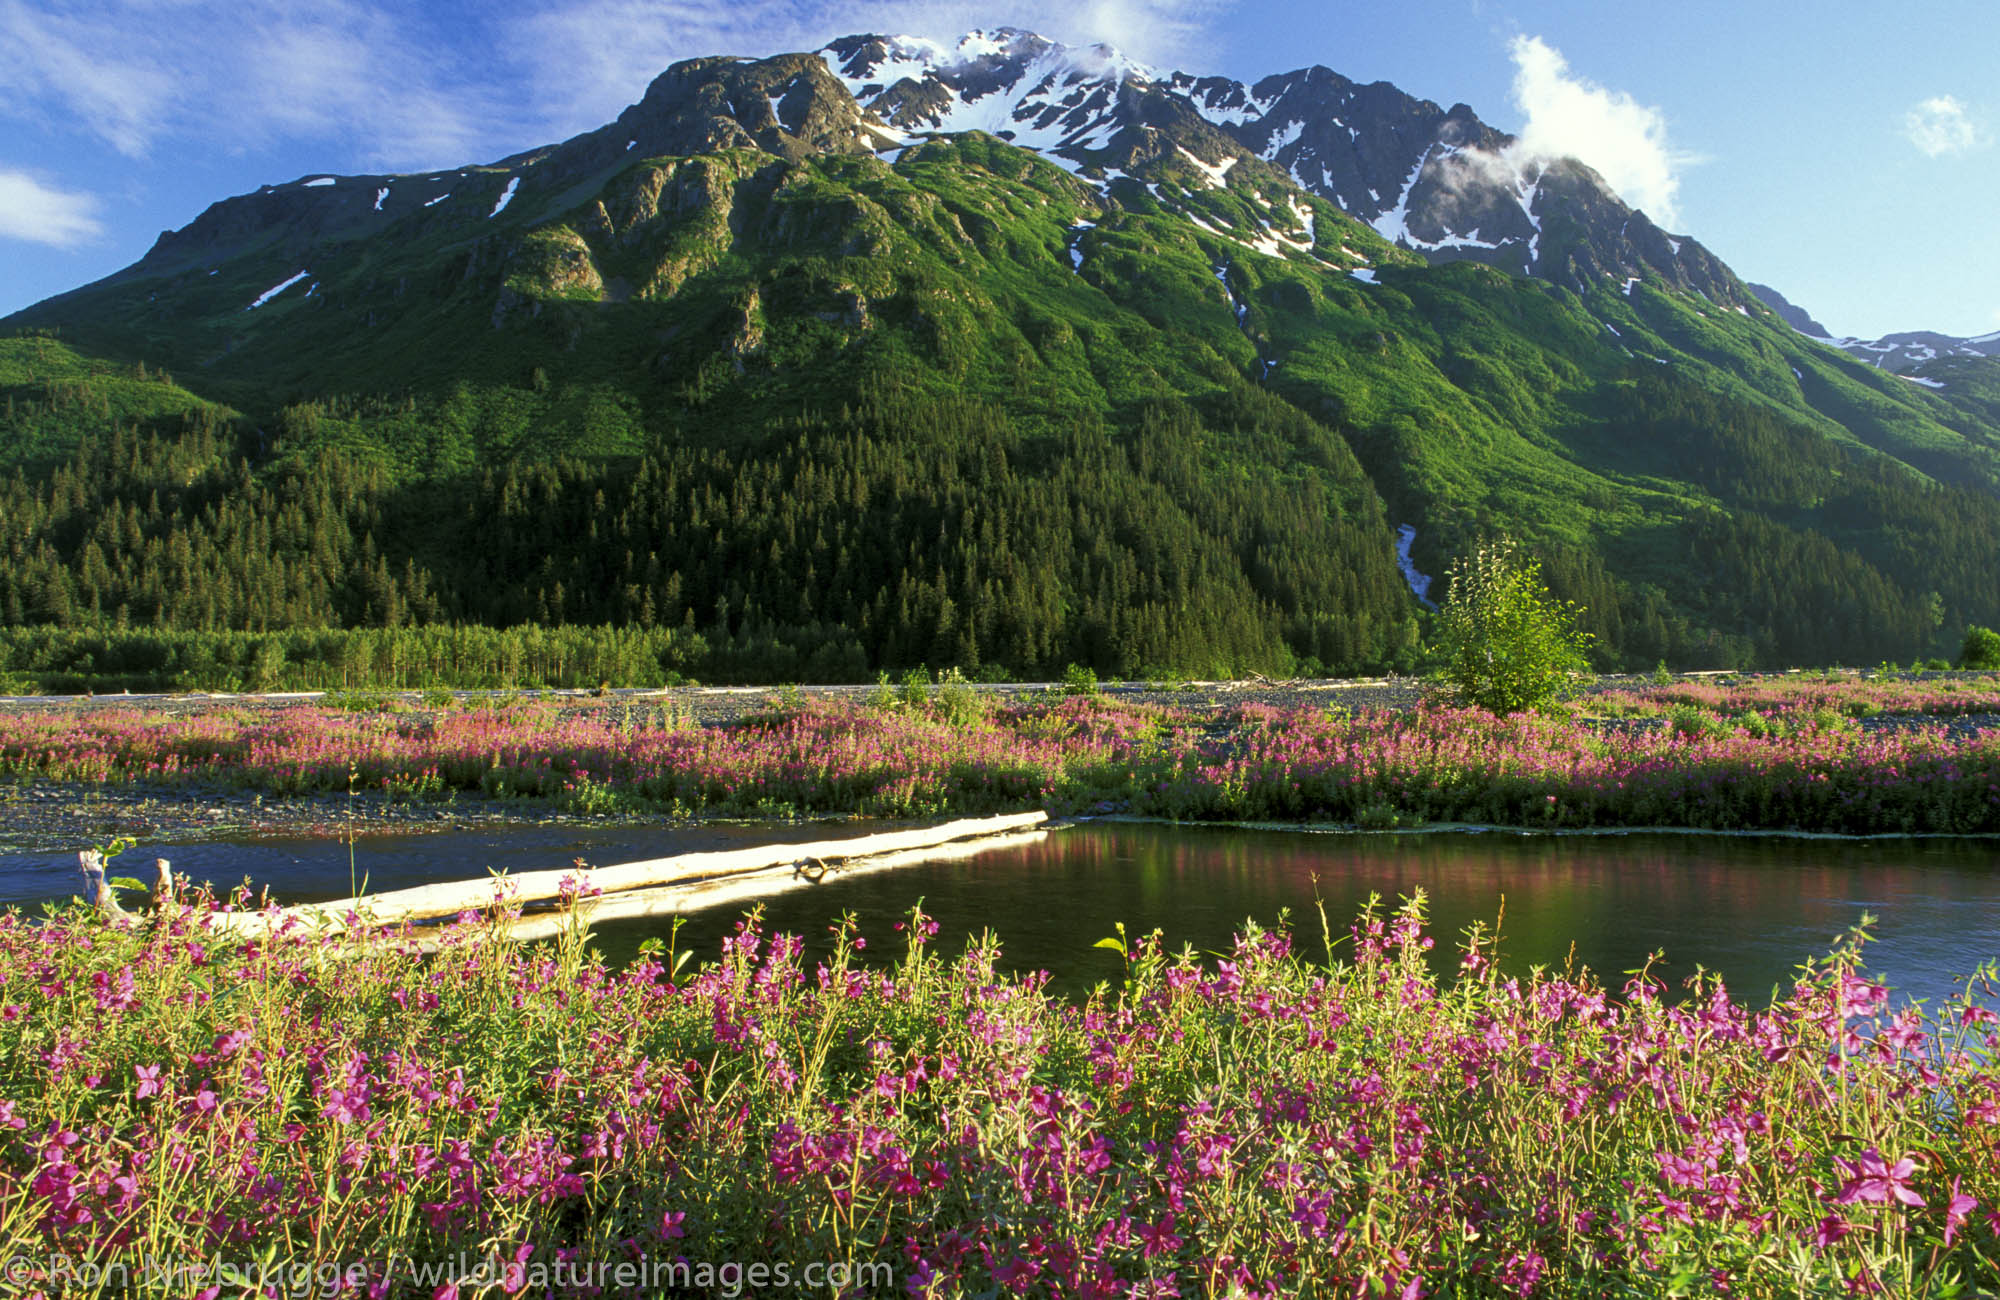 Fireweed in the Resurrection River Valley, Chugach National Forest and Kenai Fjords National Park boundry, near Seward, Alaska...